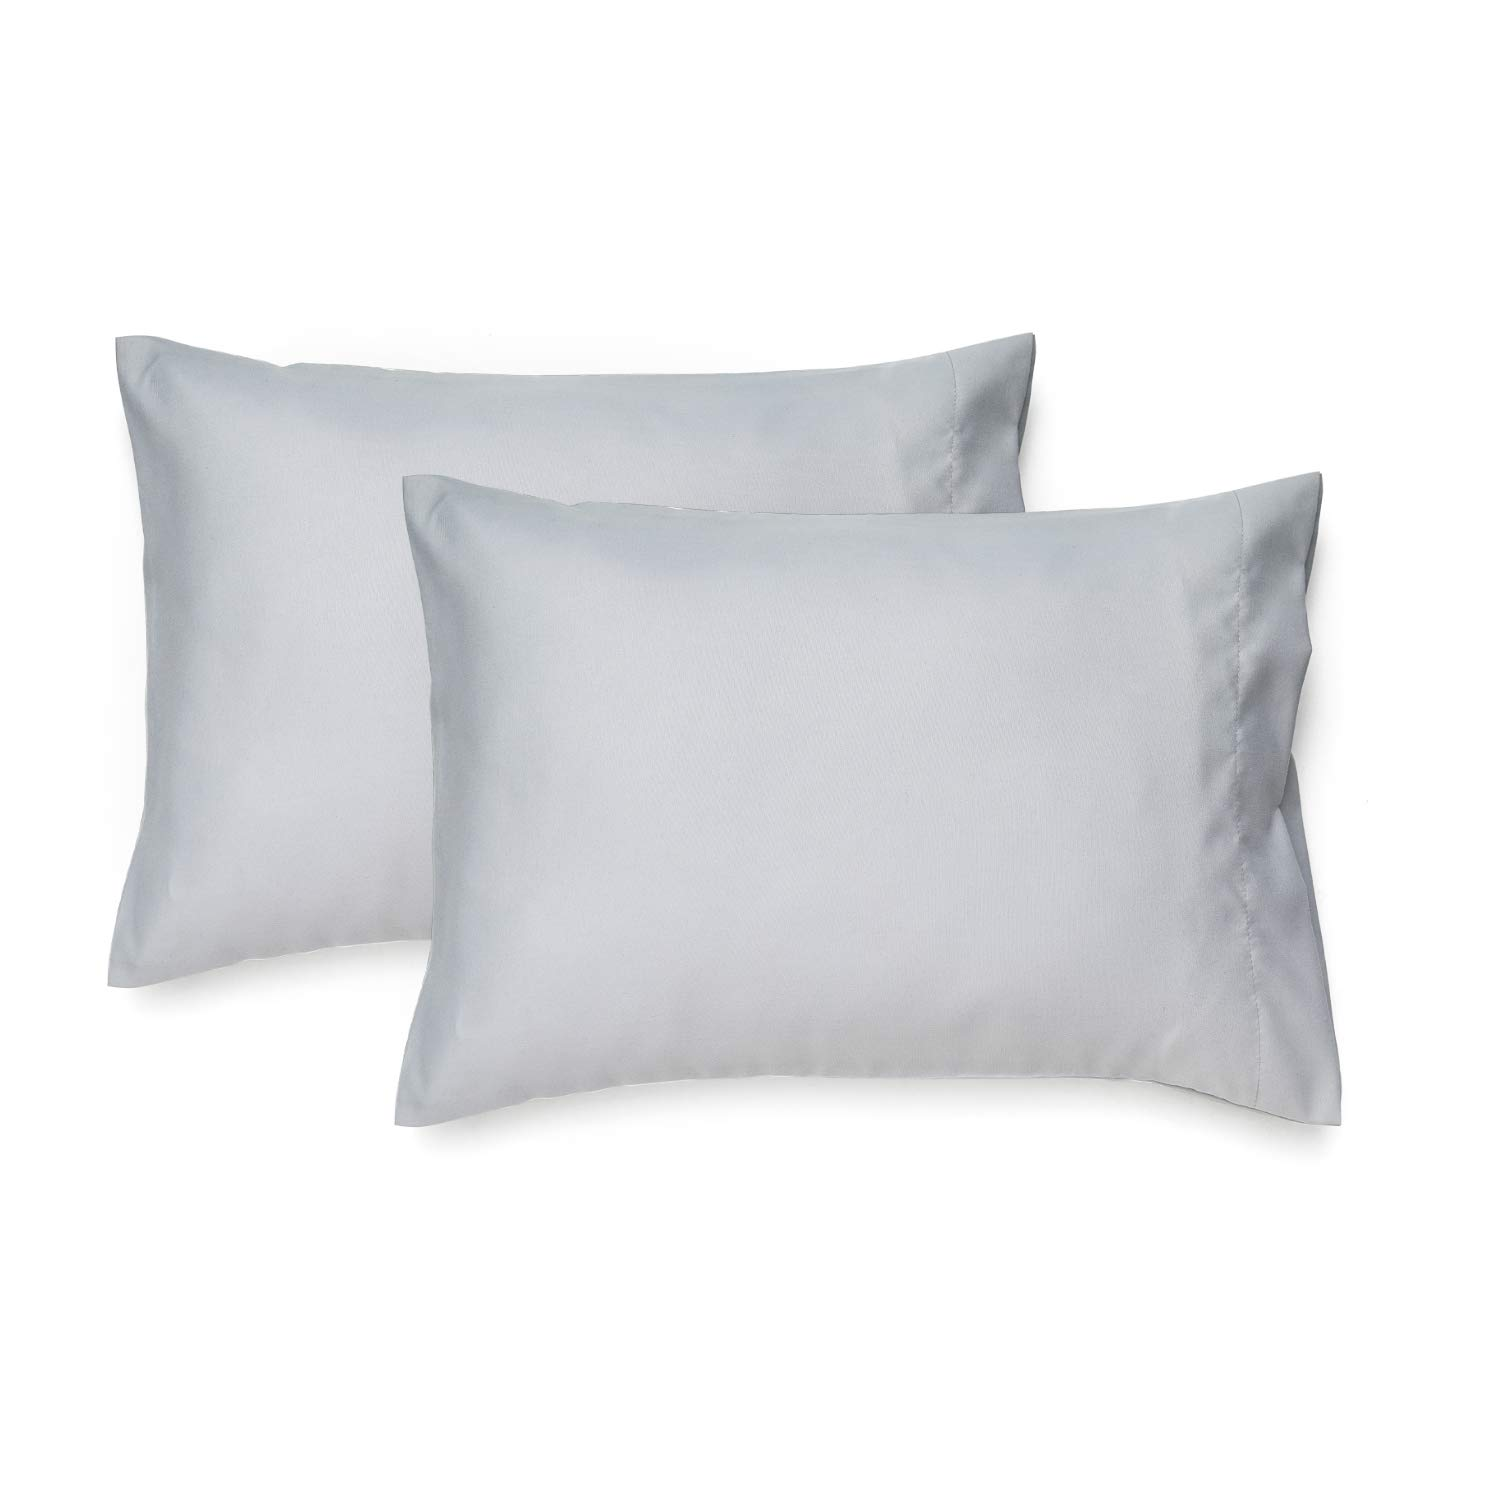 EXQ Home Toddler Pillowcases 14x20 Travel Pillow Case Set of 2, Small Pillow Case Fits Baby Pillow Sized 12x16, 13x18, Kids Pillowcases 2 Pack Machine Washable with Envelope Closure(Light Grey)